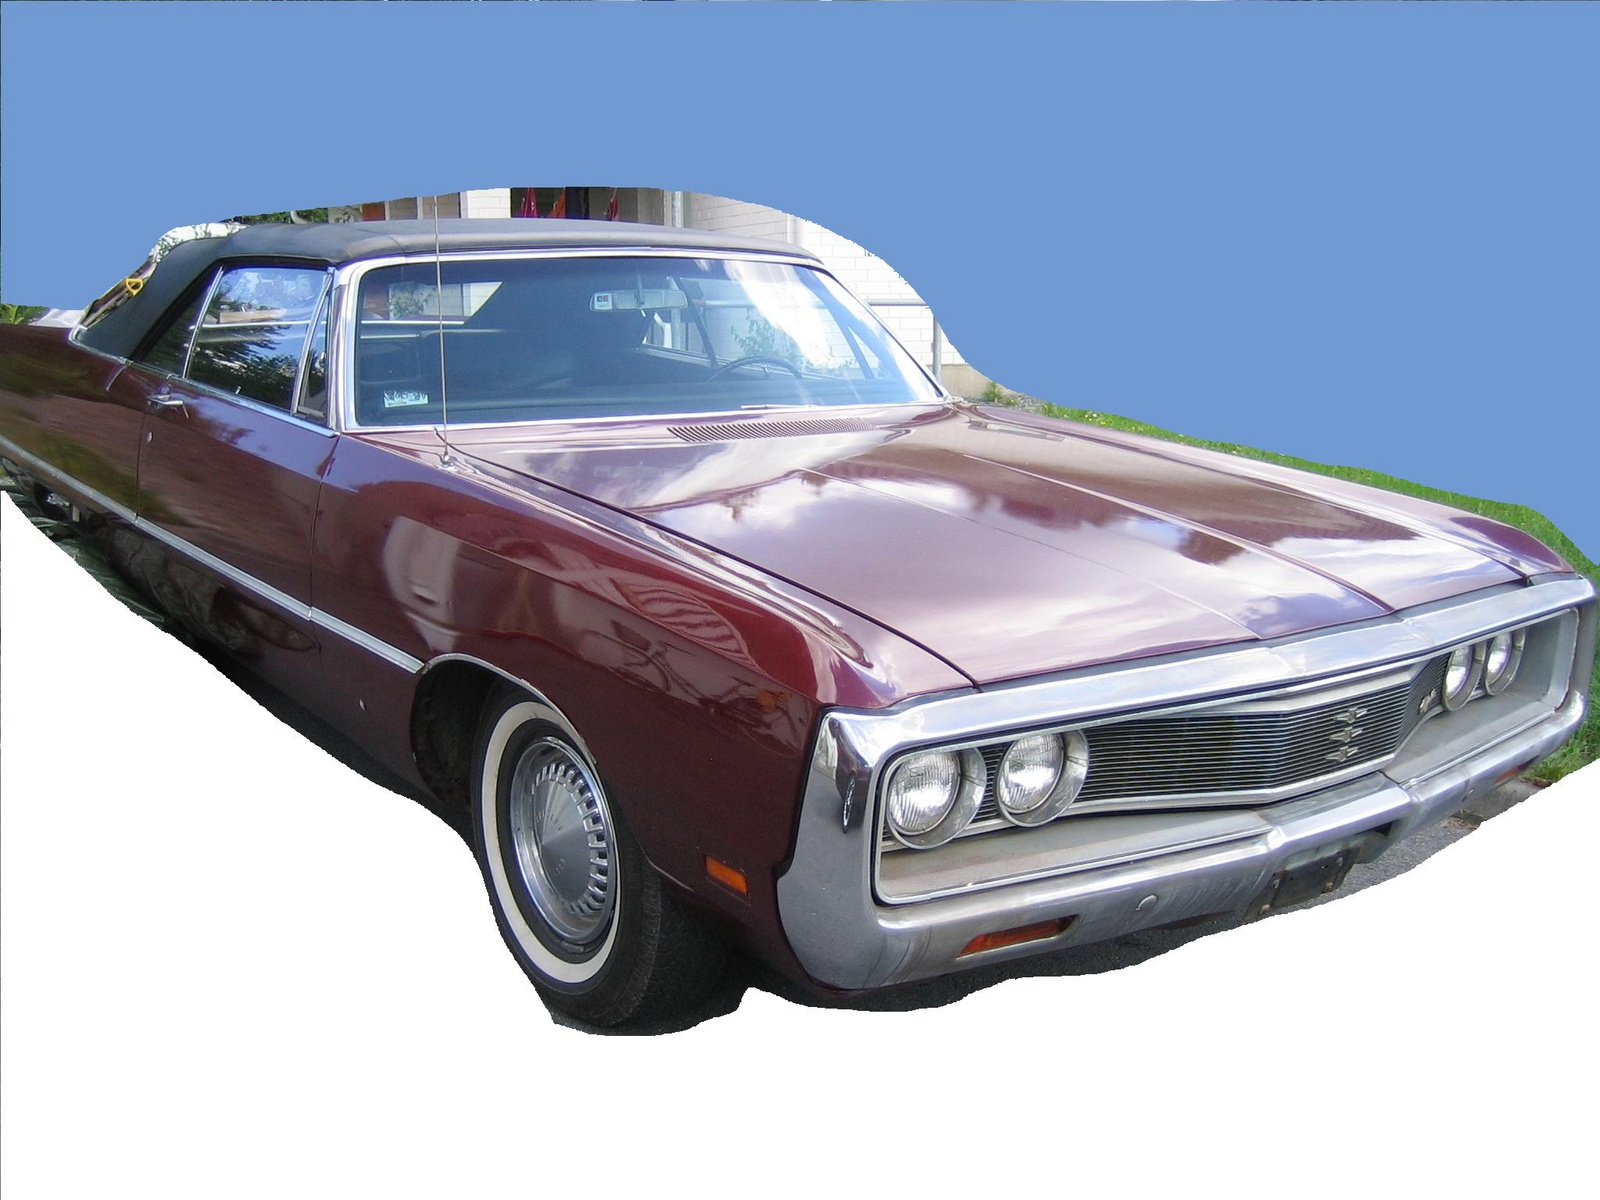 1969 Chrysler Newport picture, exterior